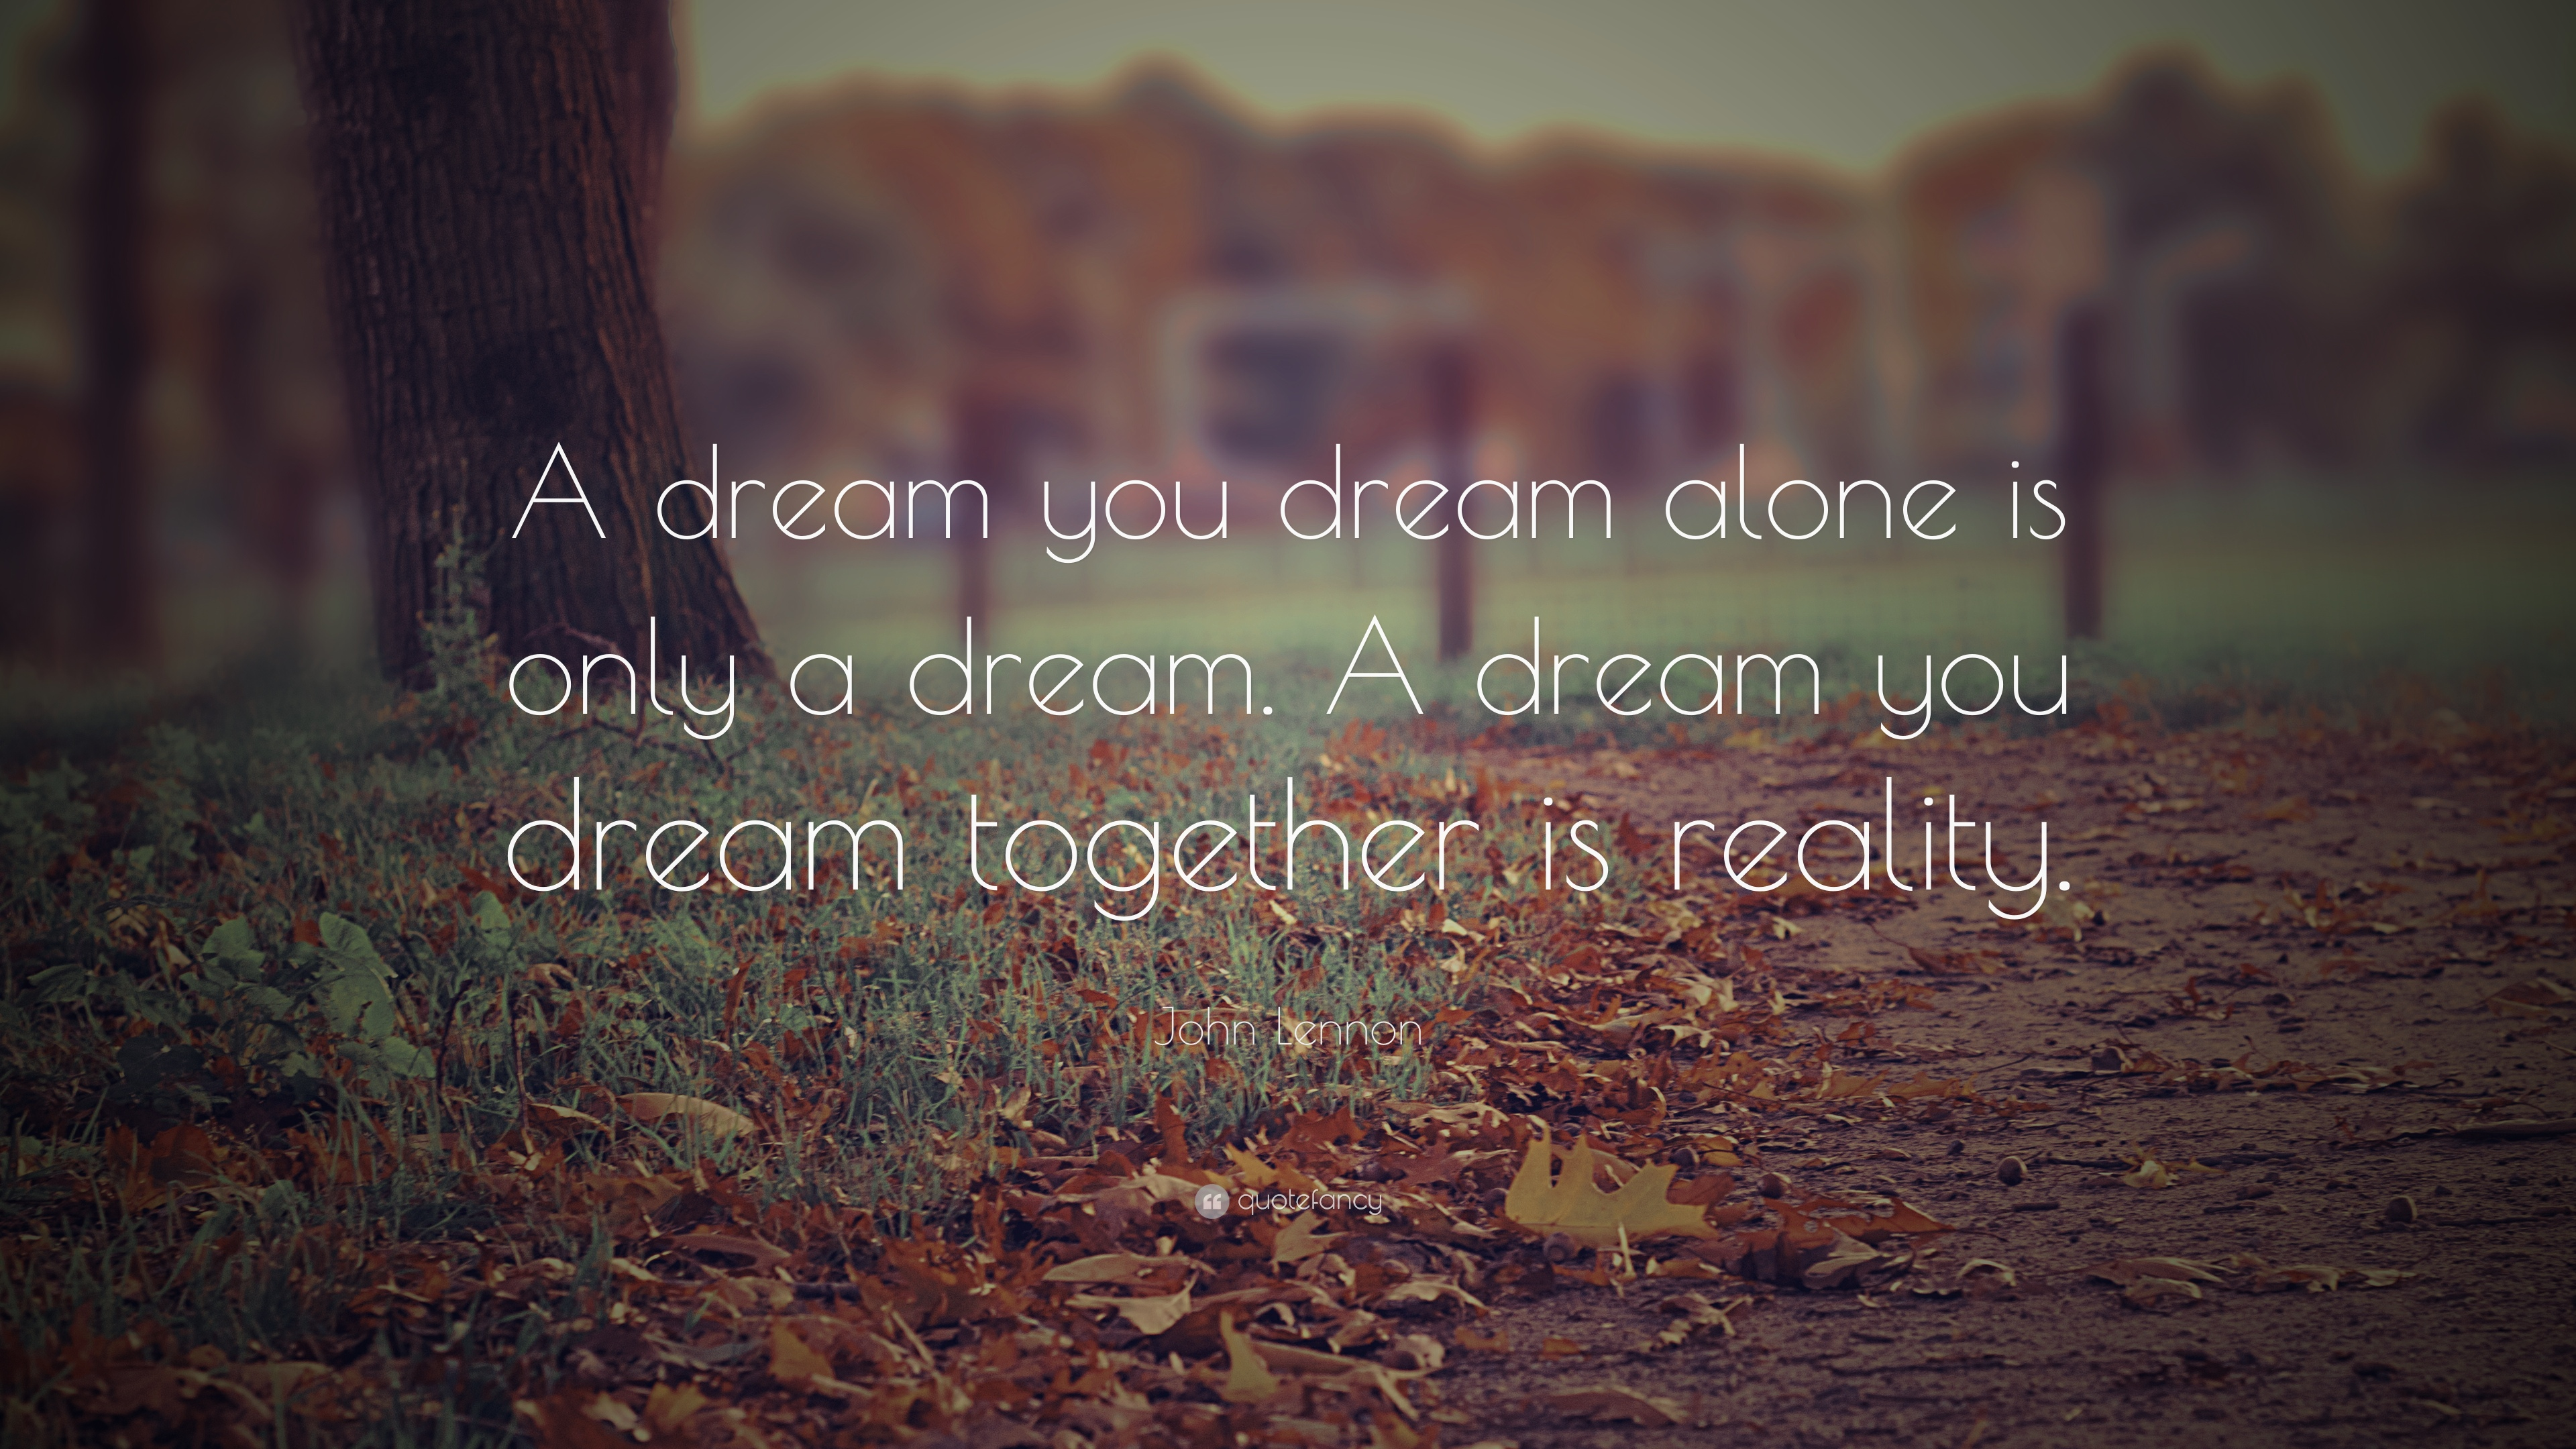 Peaceful Wallpaper With Quotes John Lennon Quote A Dream You Dream Alone Is Only A